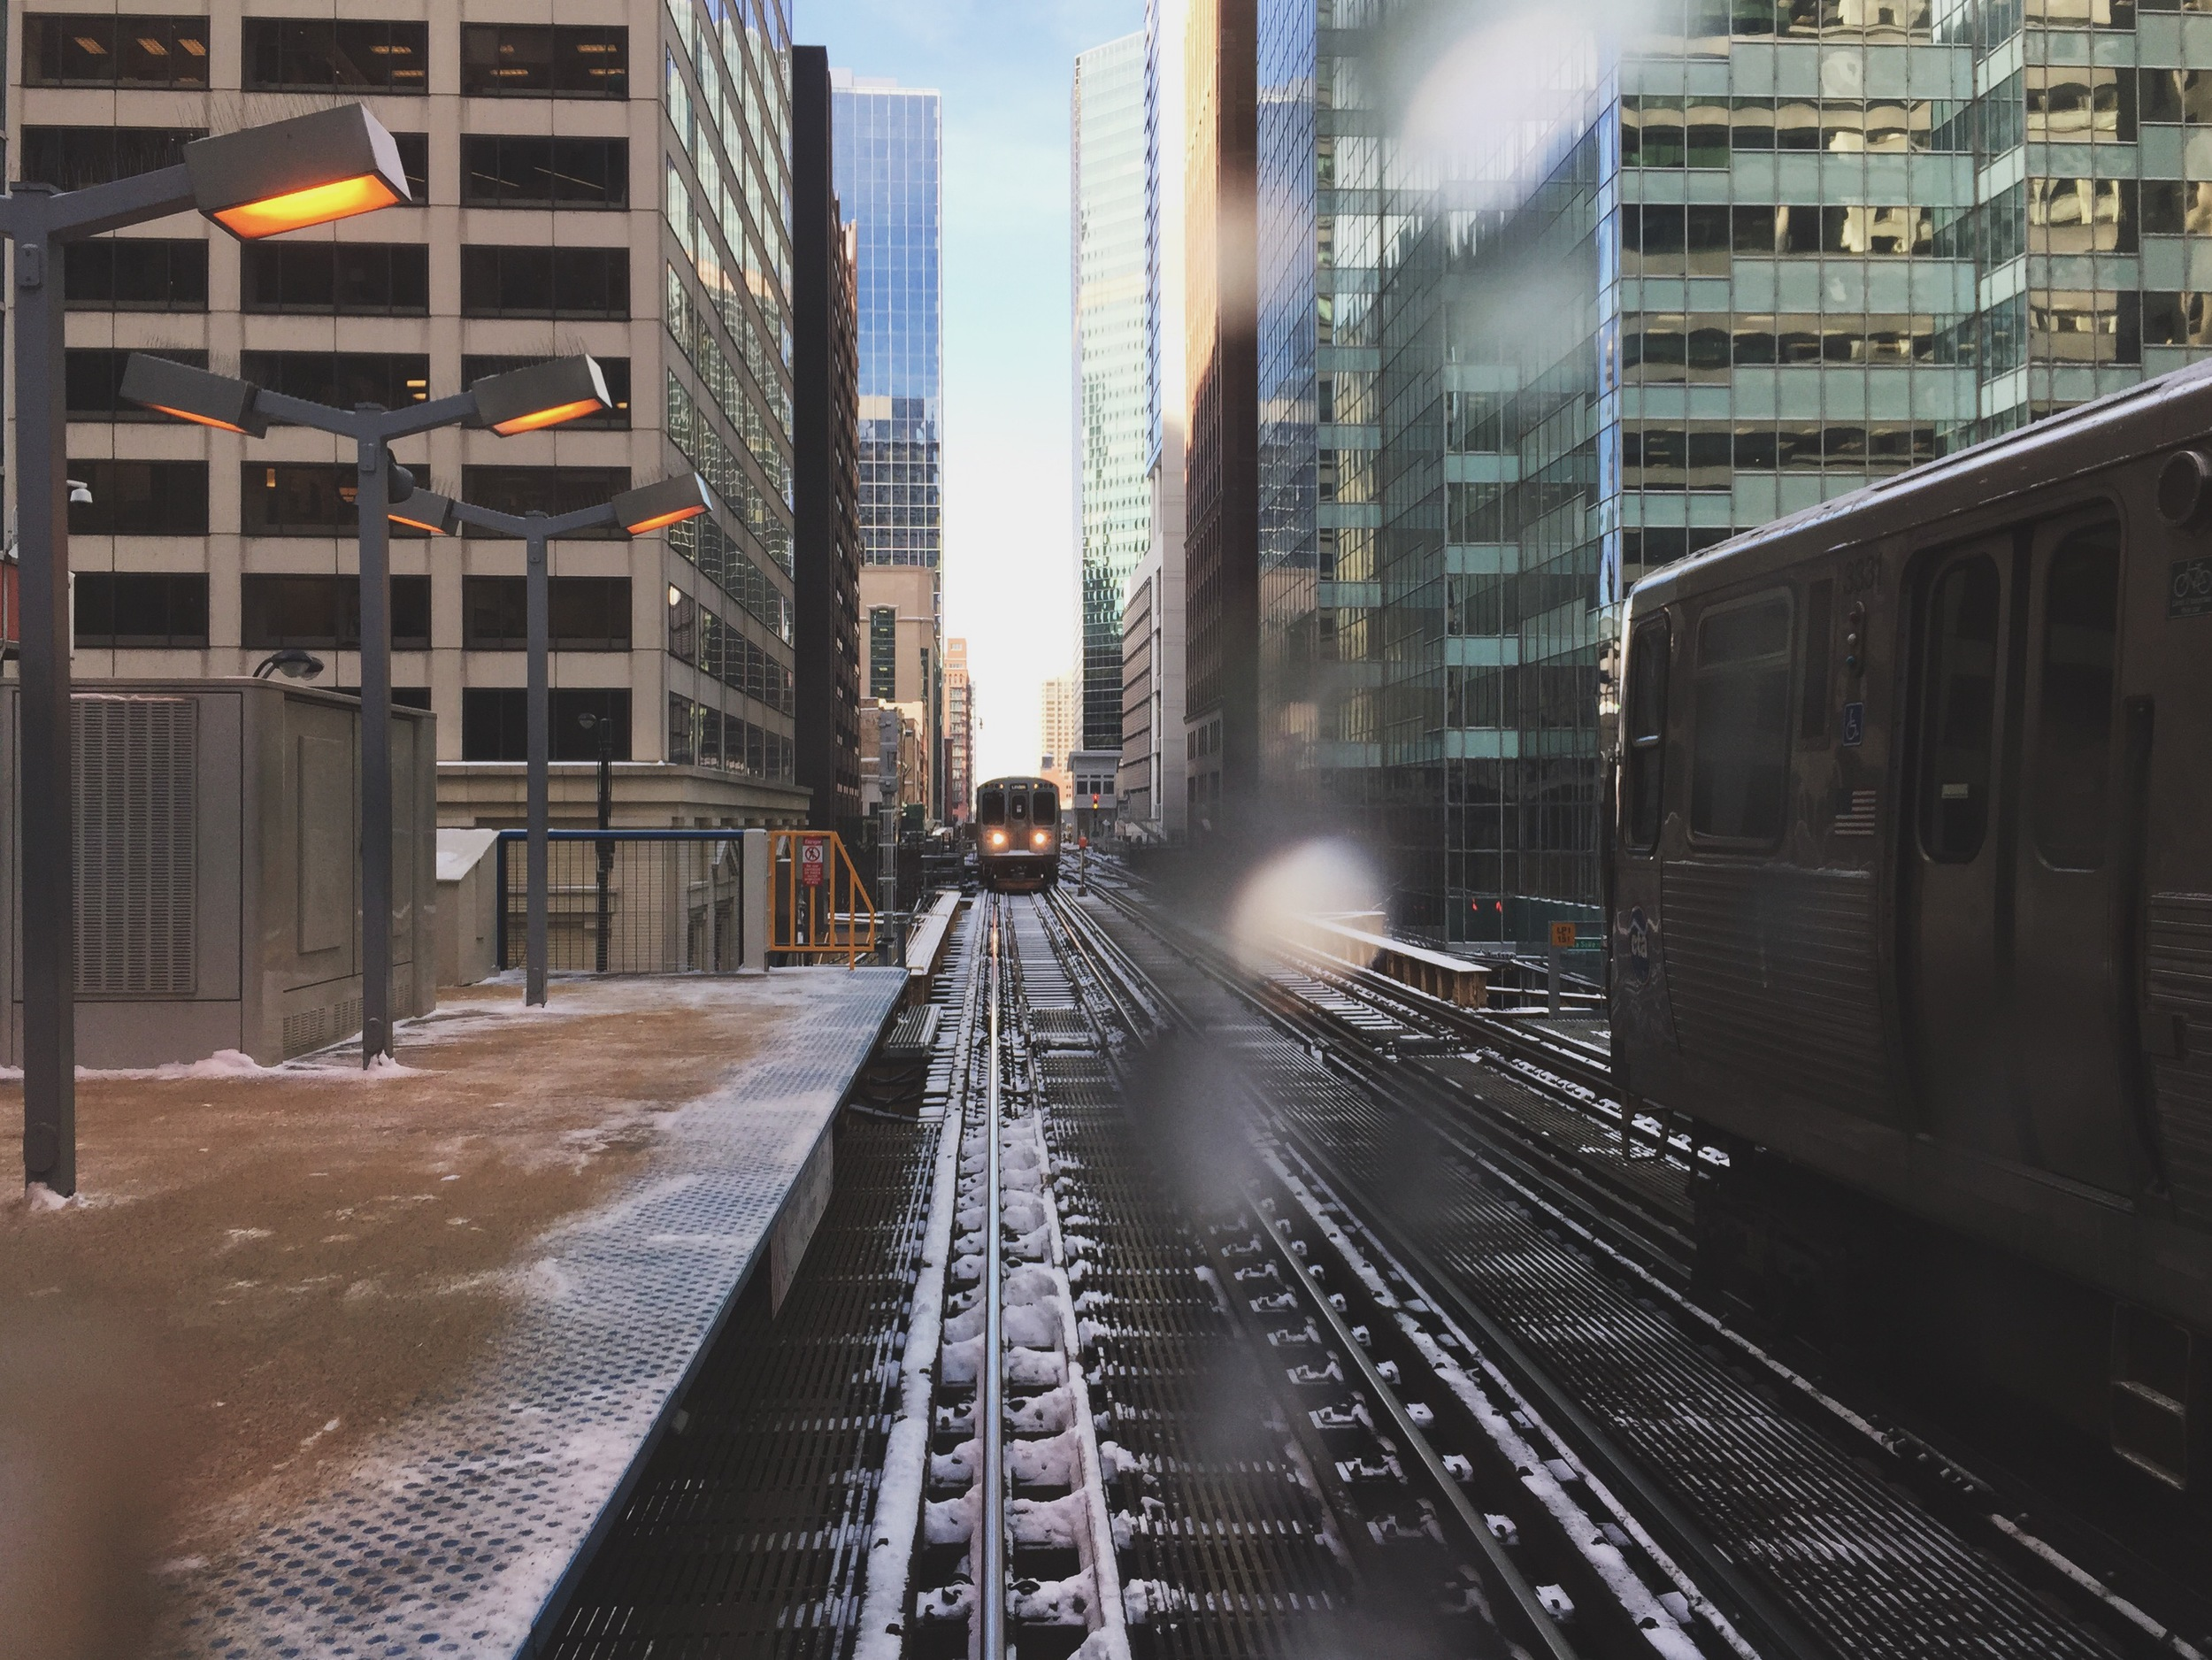 Icy el tracks, downtown Chicago.